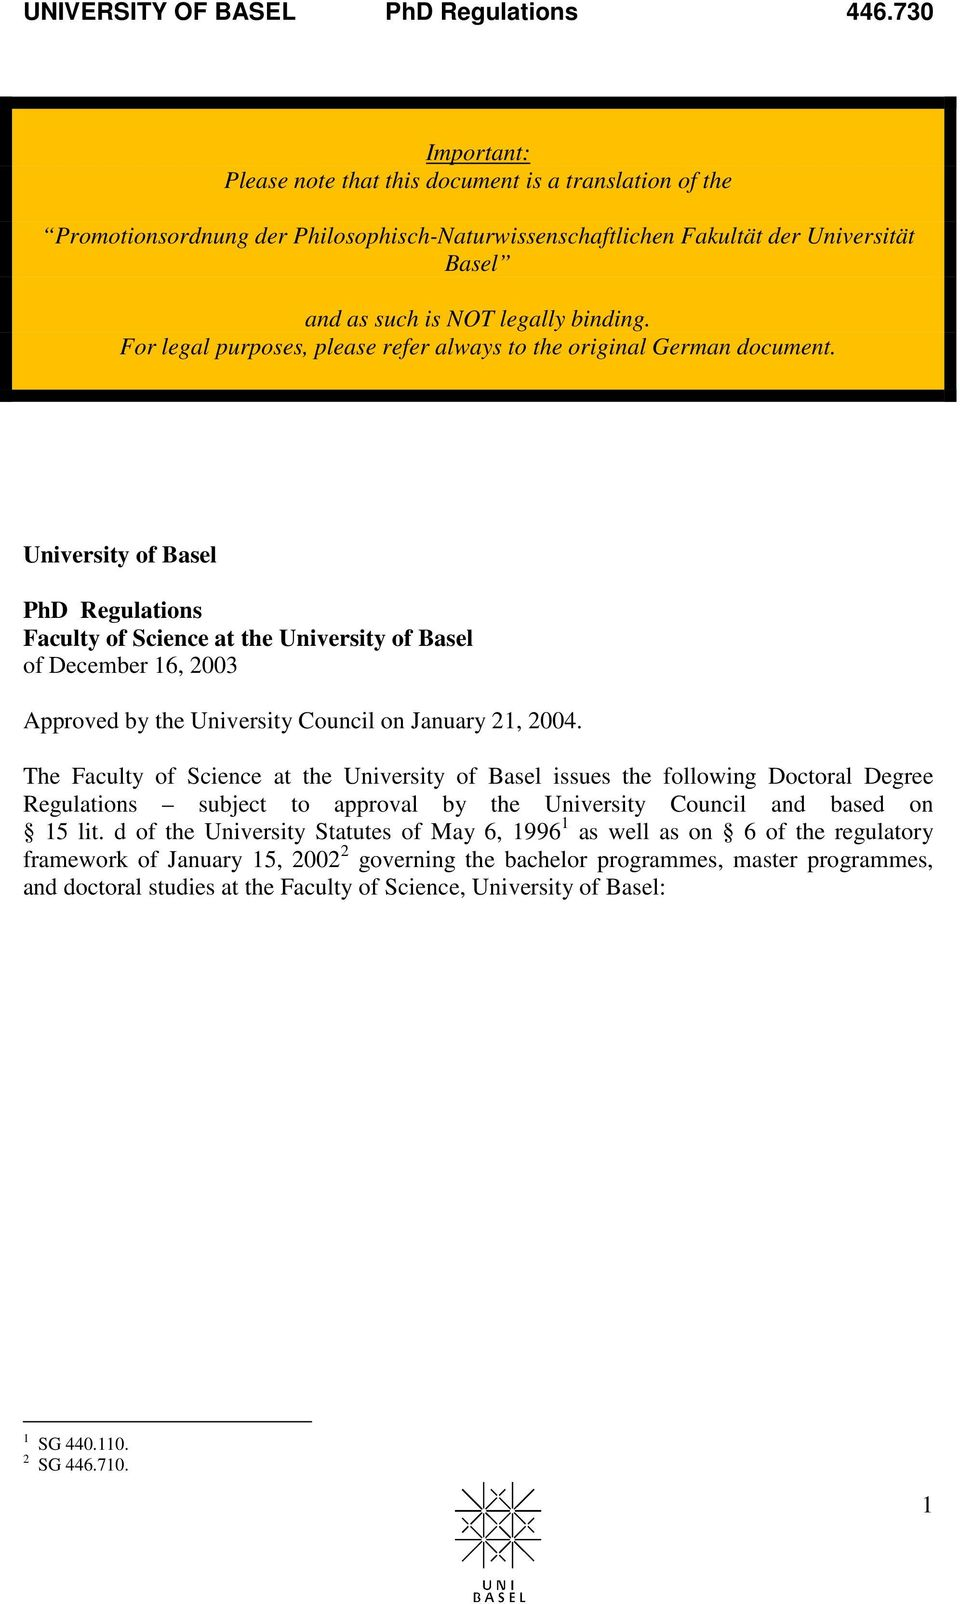 University of Basel PhD Regulations Faculty of Science at the University of Basel of December 16, 2003 Approved by the University Council on January 21, 2004.